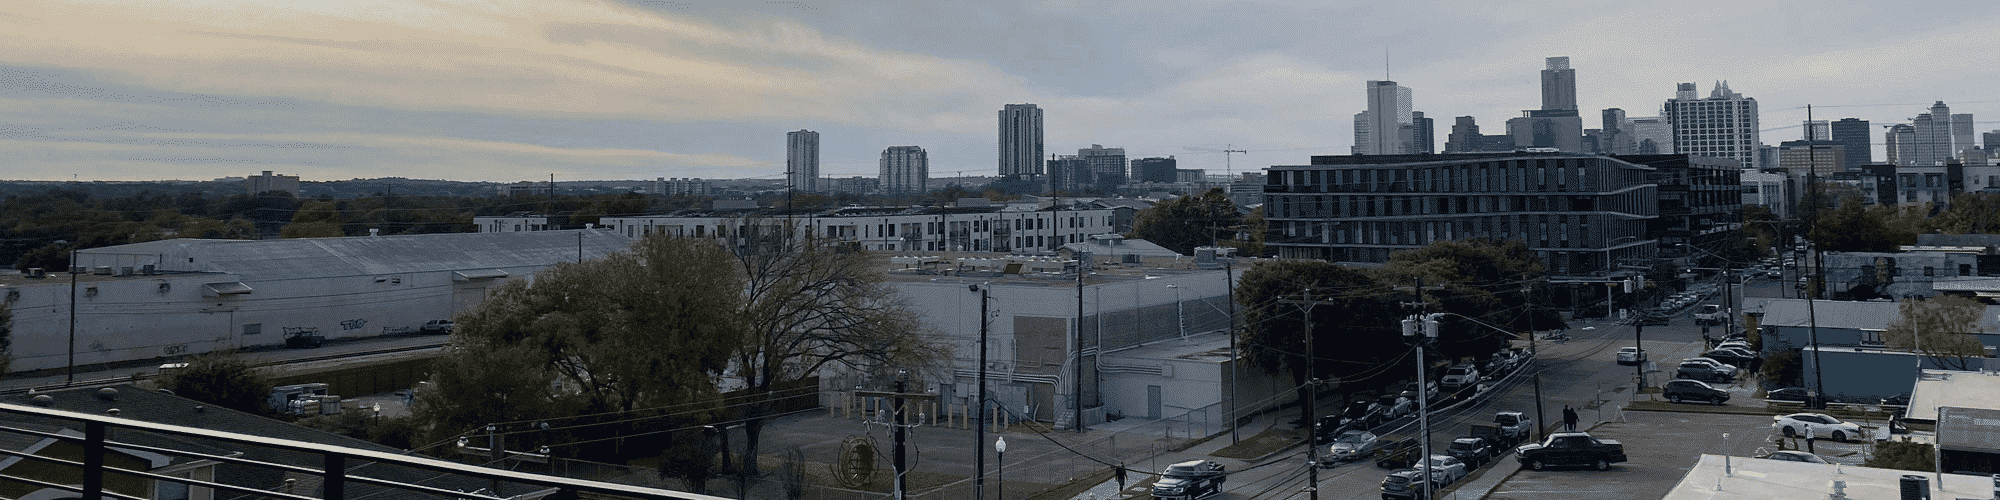 East-6-Downtown-View